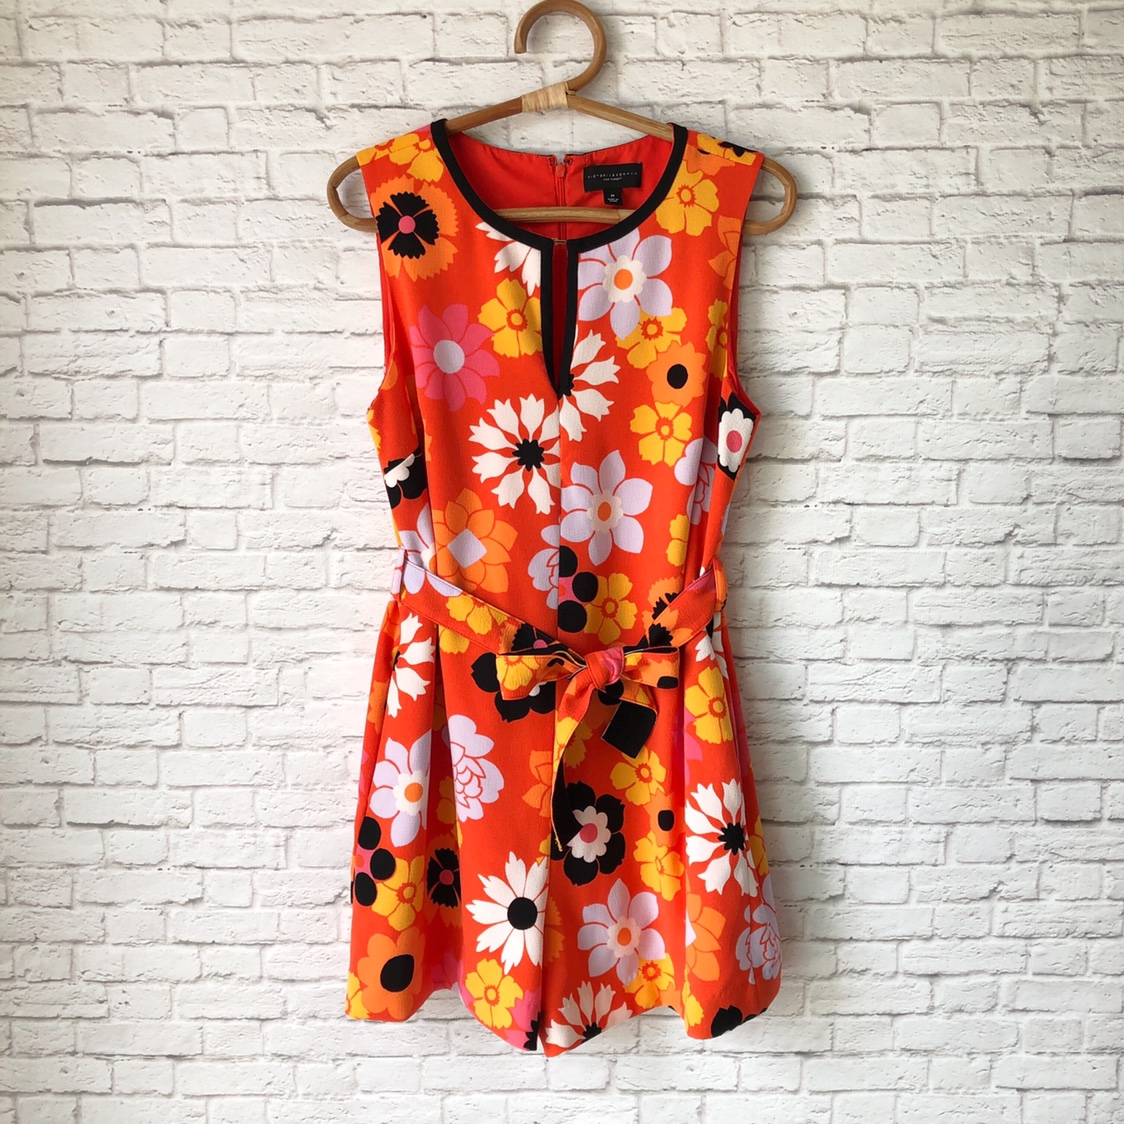 Product Image 1 - Retro floral romper by Victoria